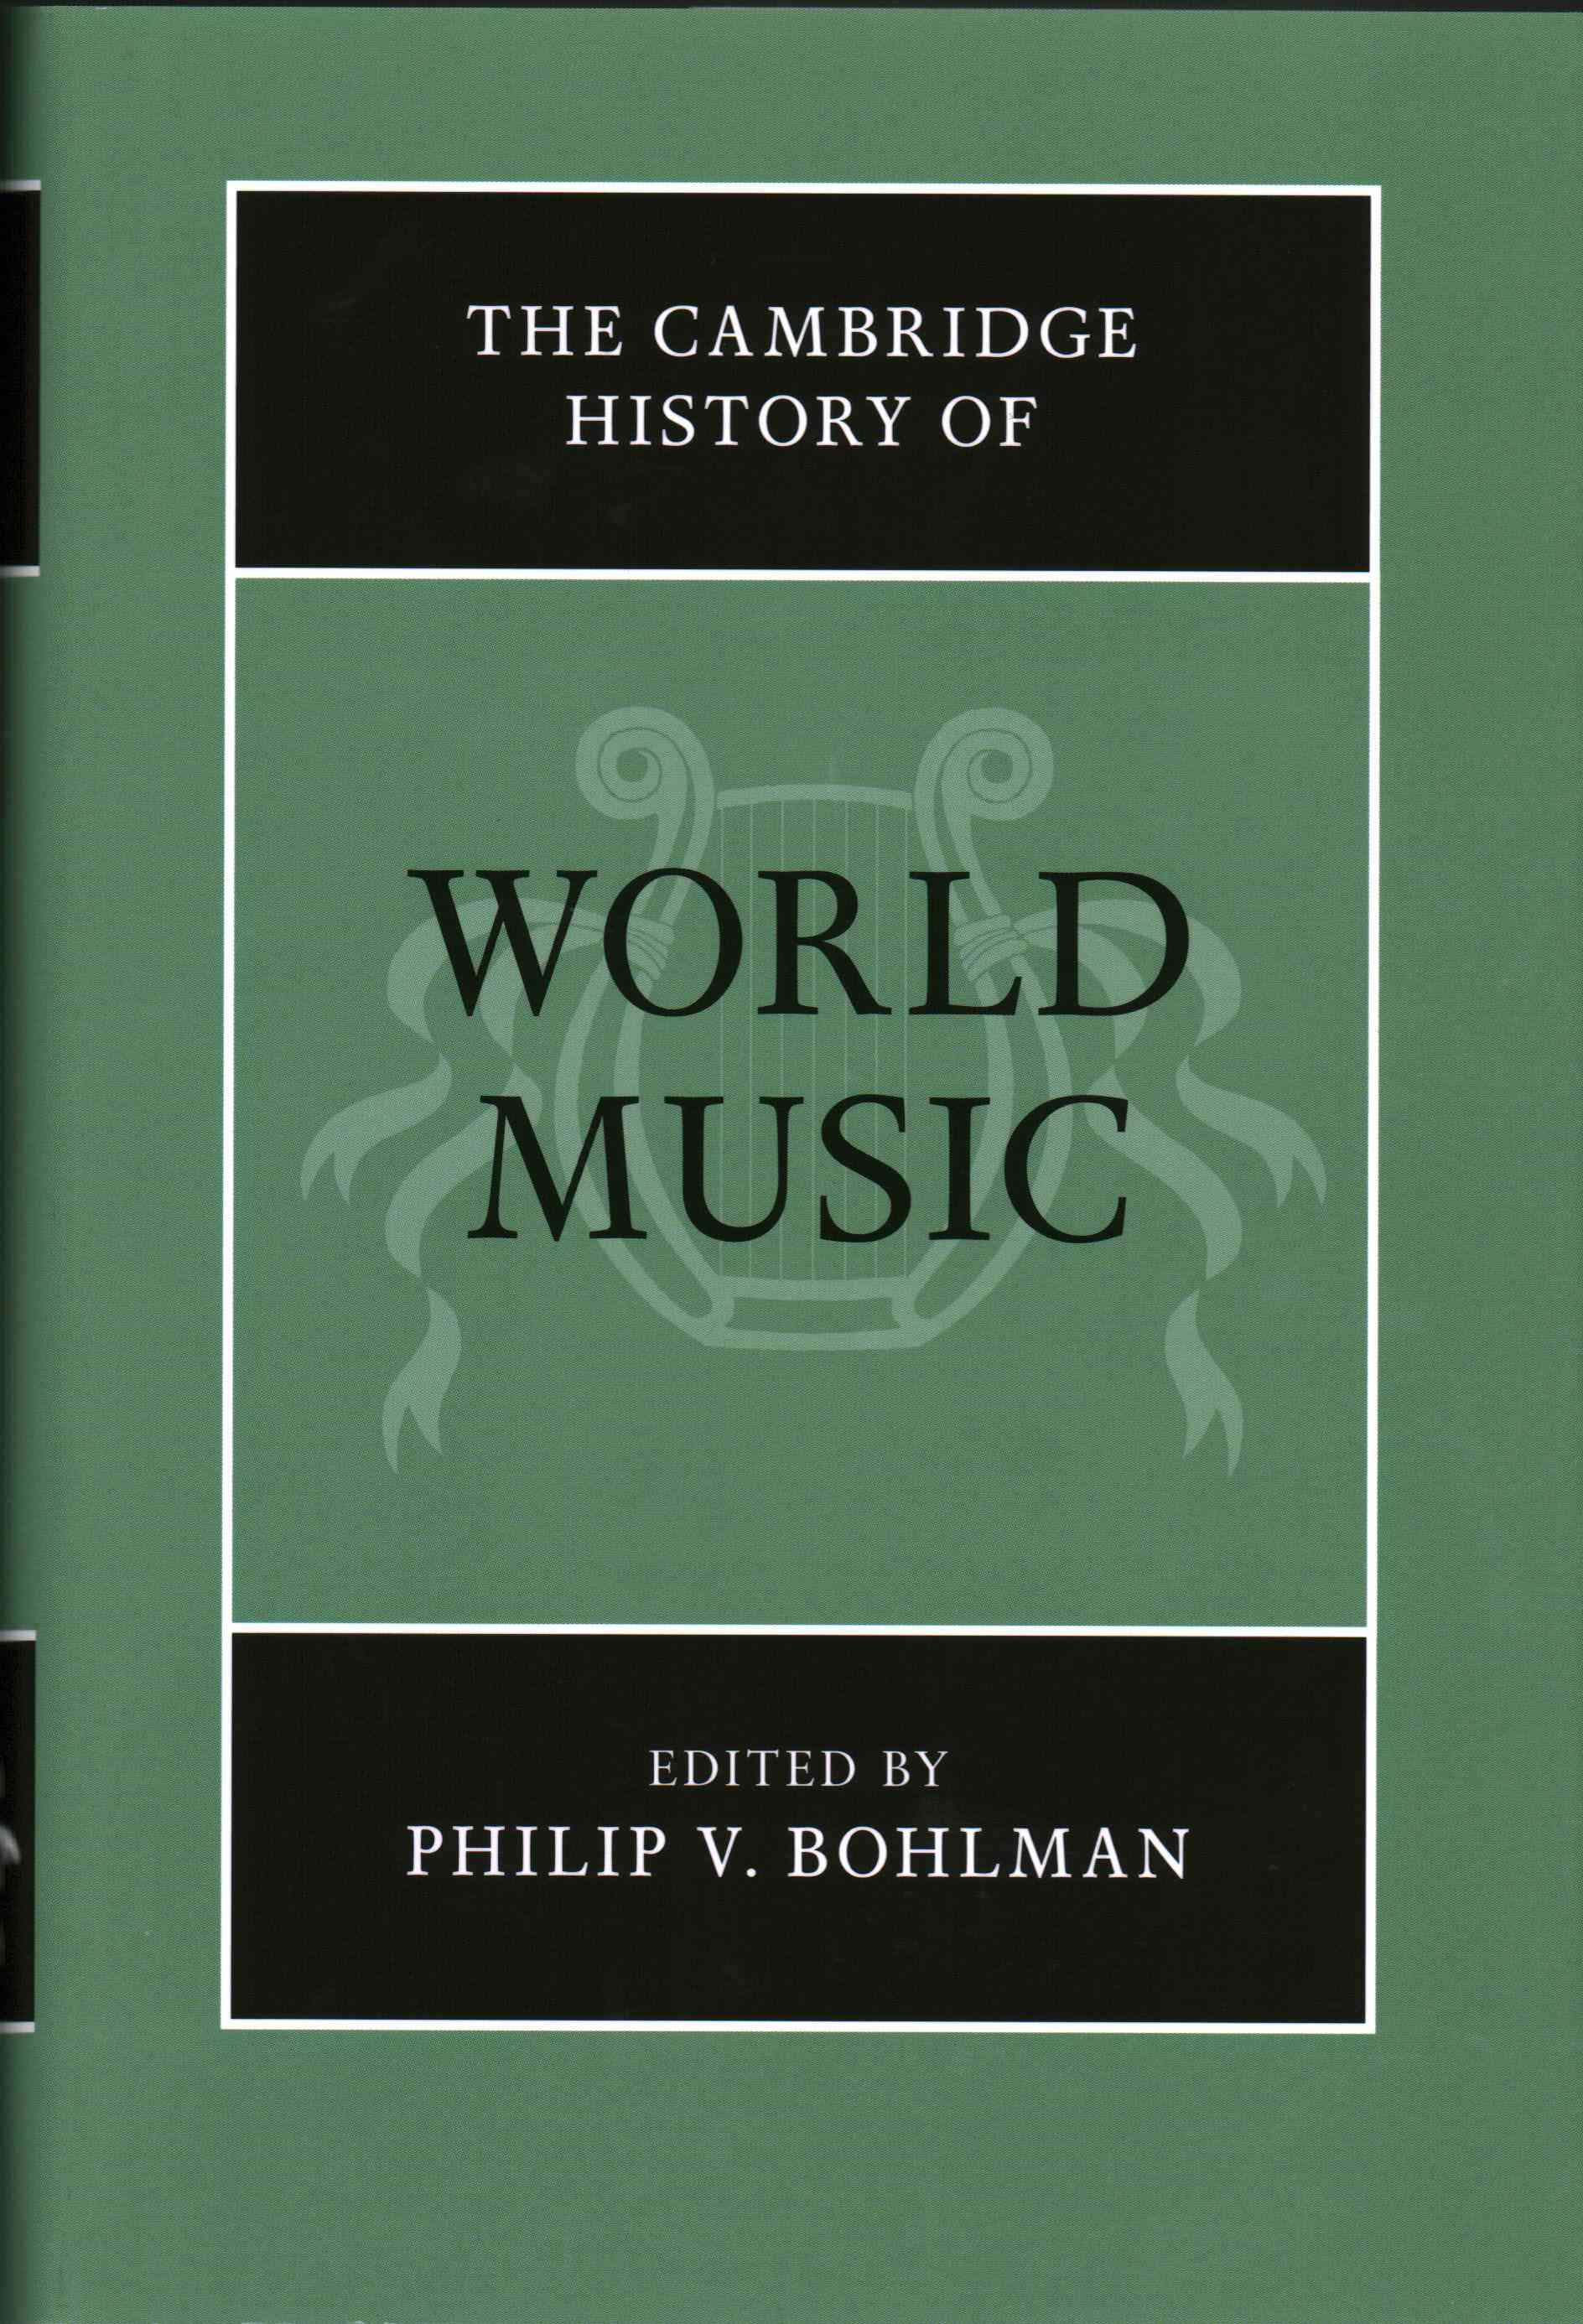 The Cambridge History of World Music By Bohlman, Philip V.